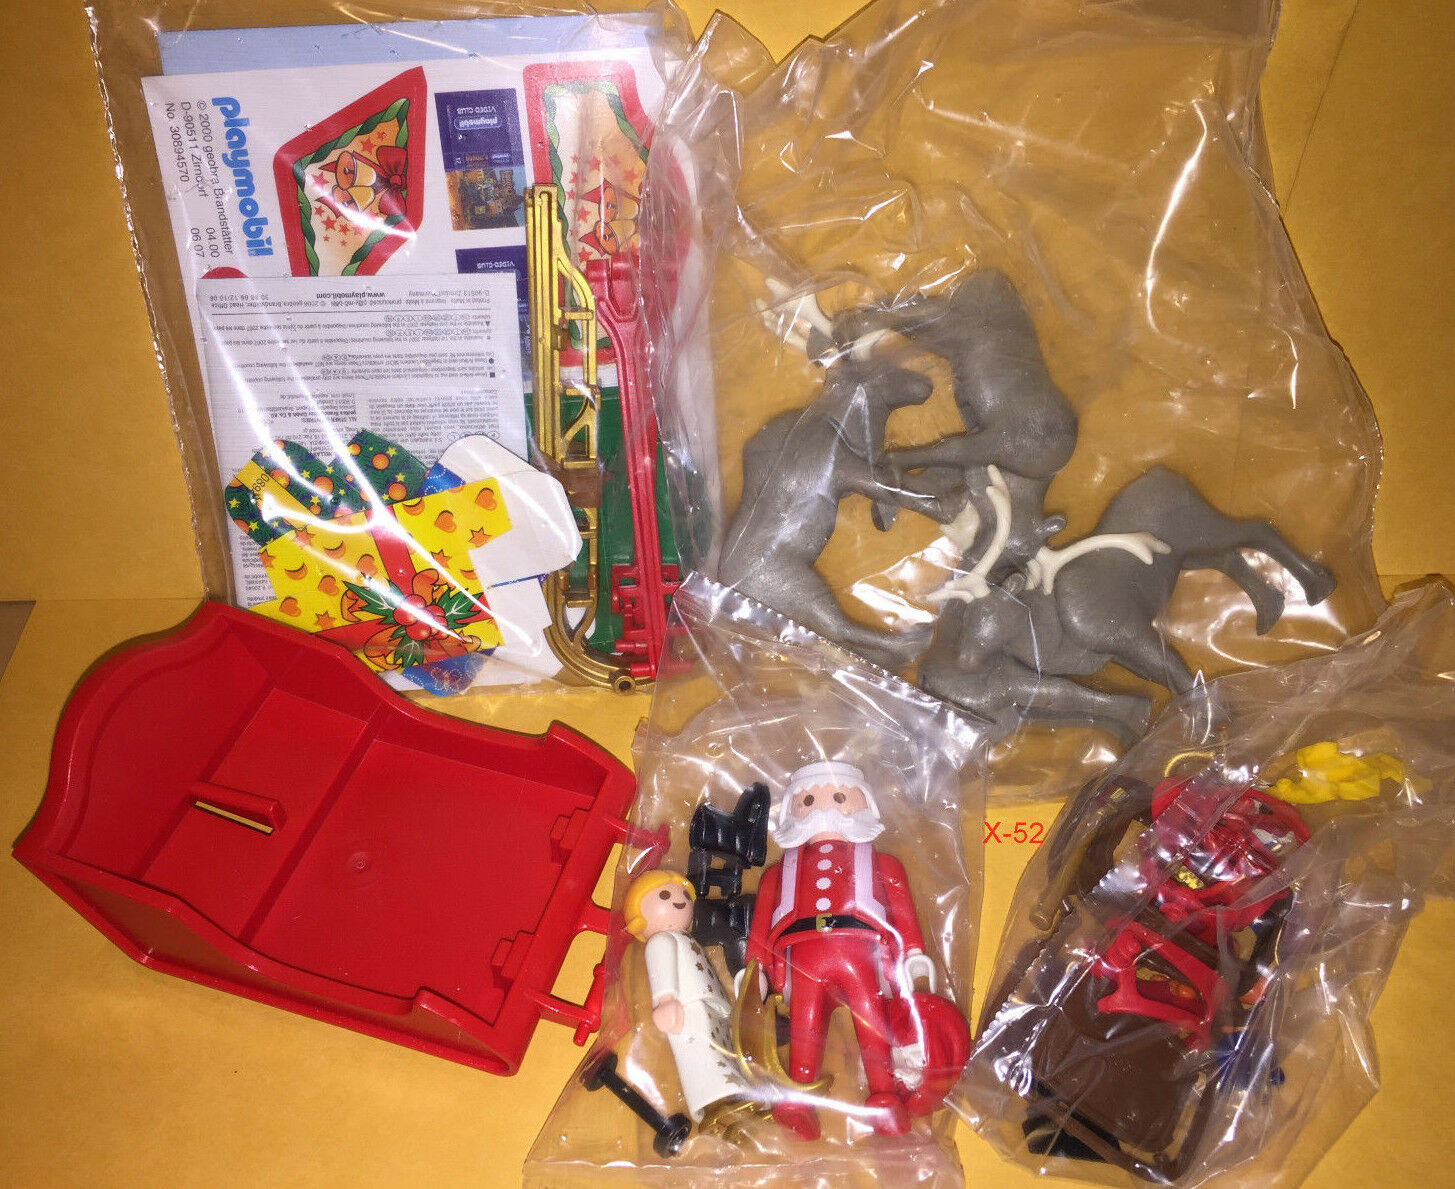 PLAYMOBIL 3604 SANTA CLAUS figure SLEIGH TOY with 4 REINDEER complete X-MAS set